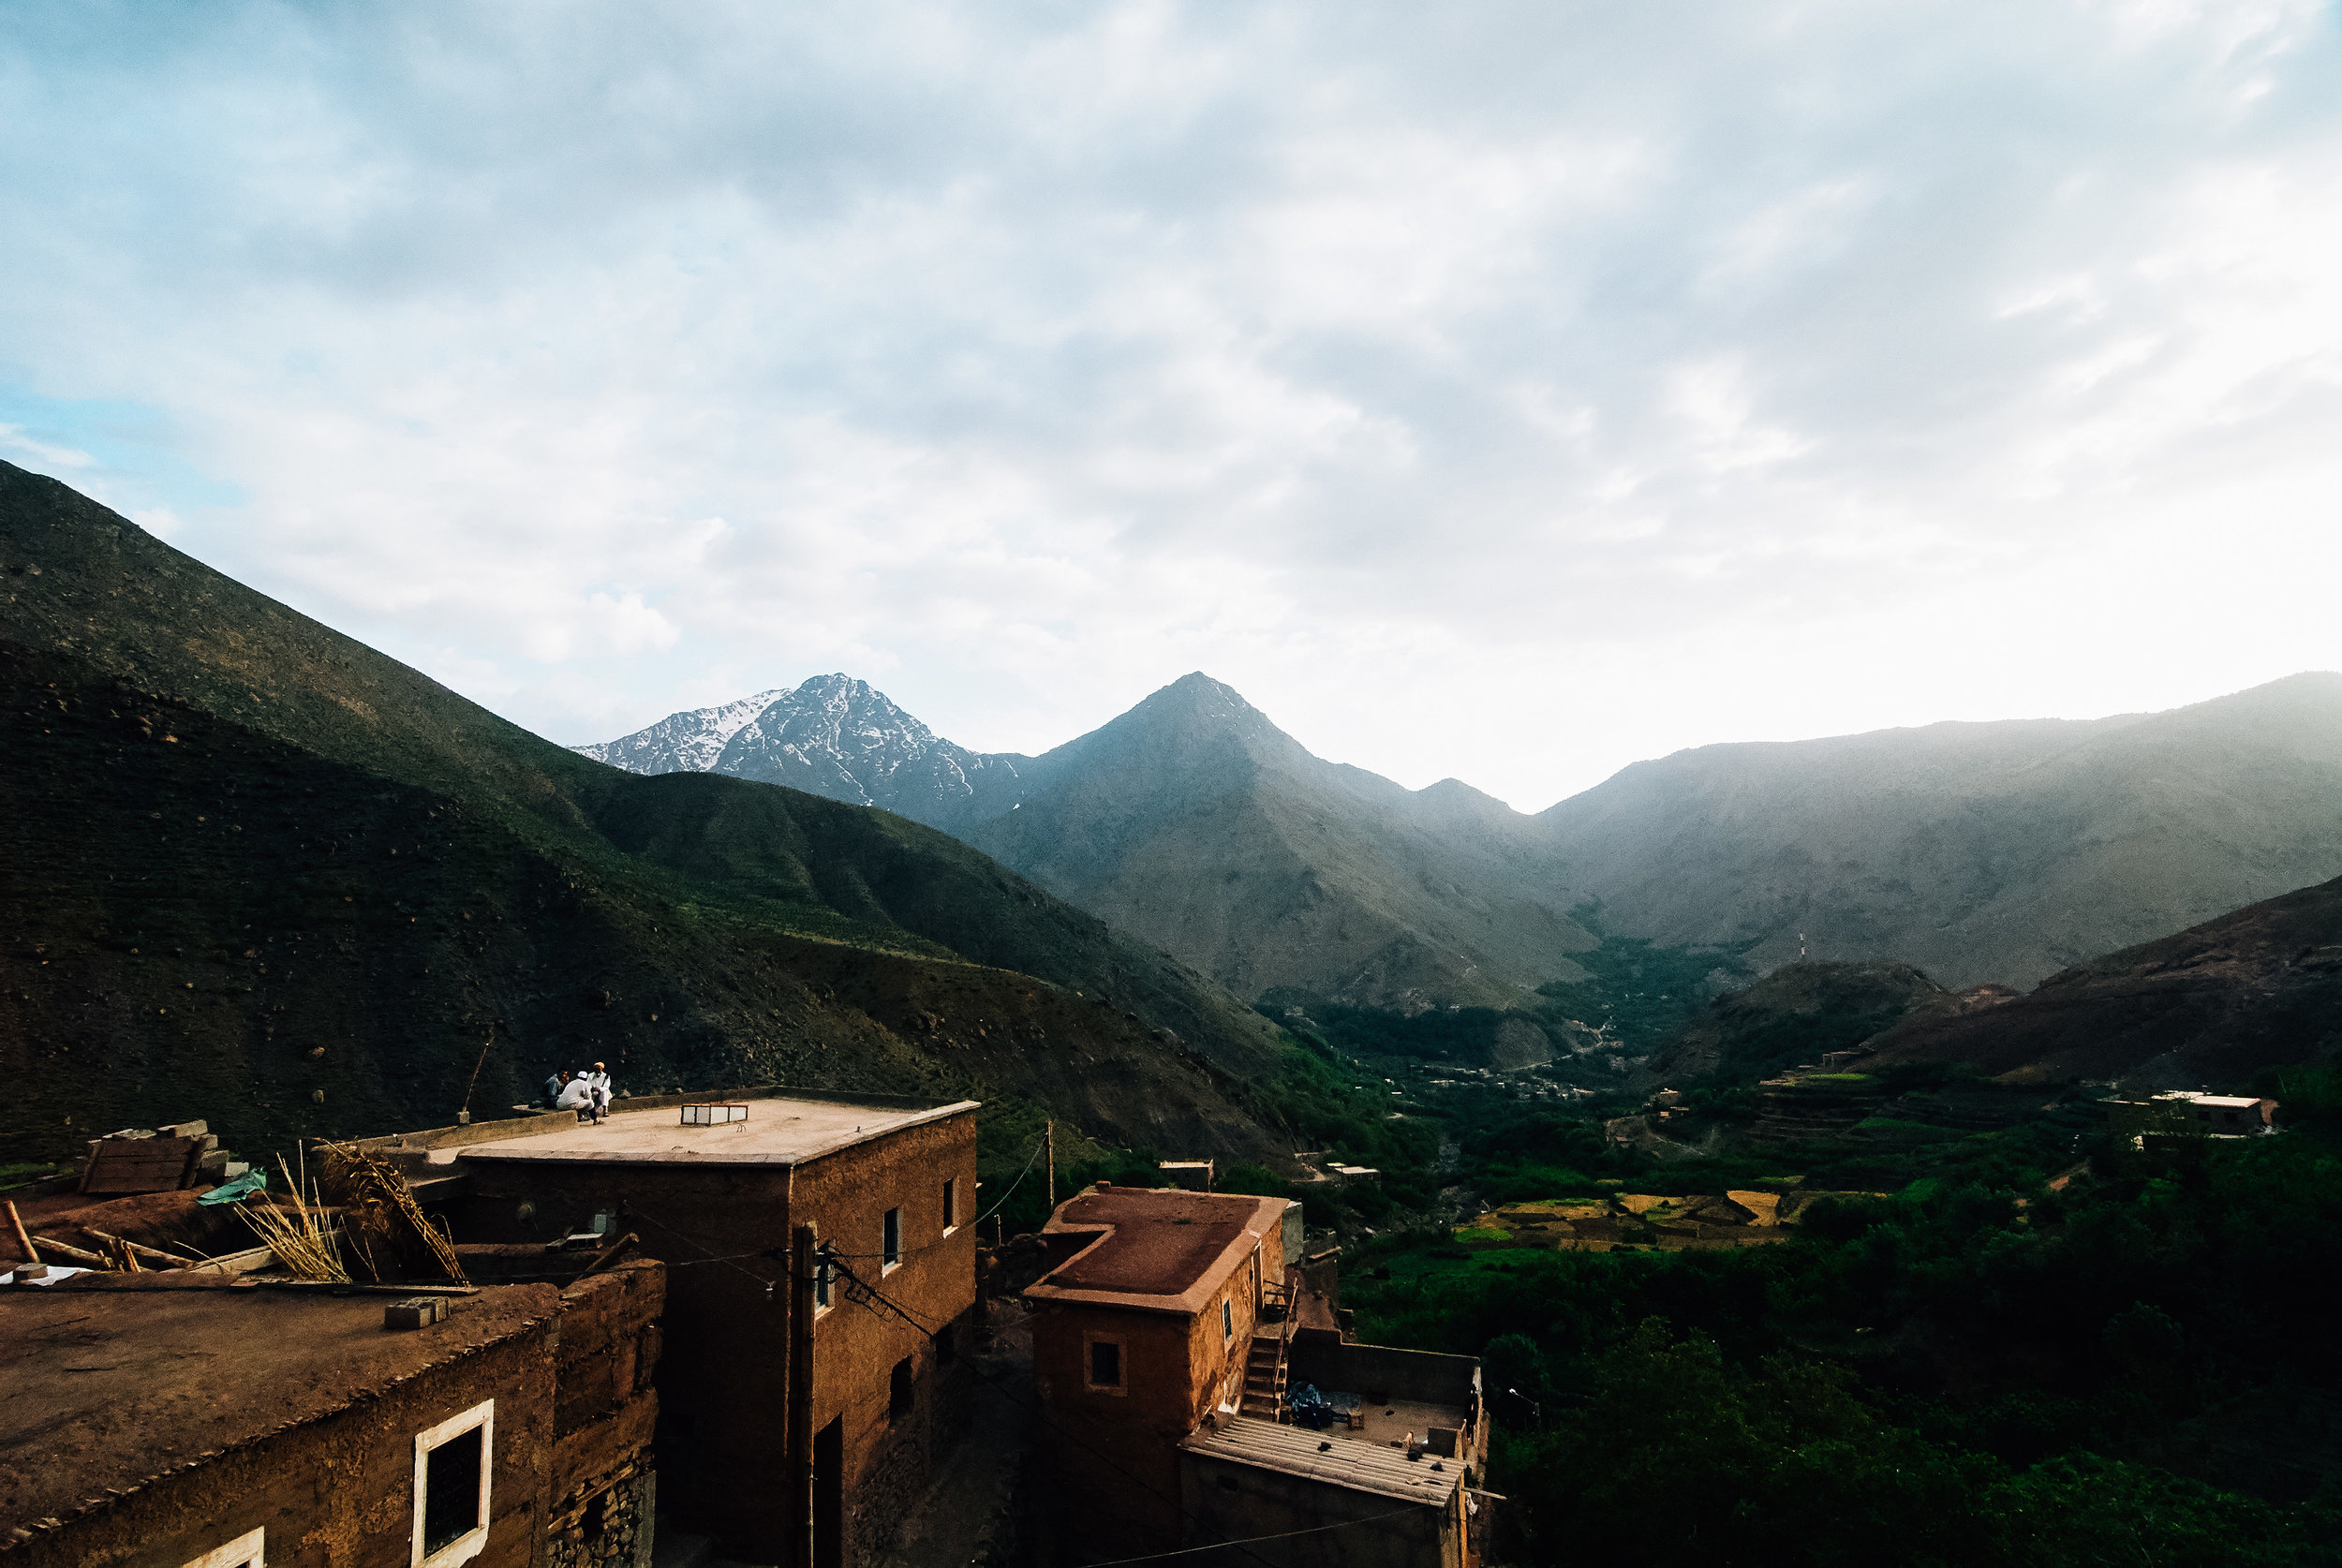 Morocco mountains Toronto Travel Photographers - Suech and Beck